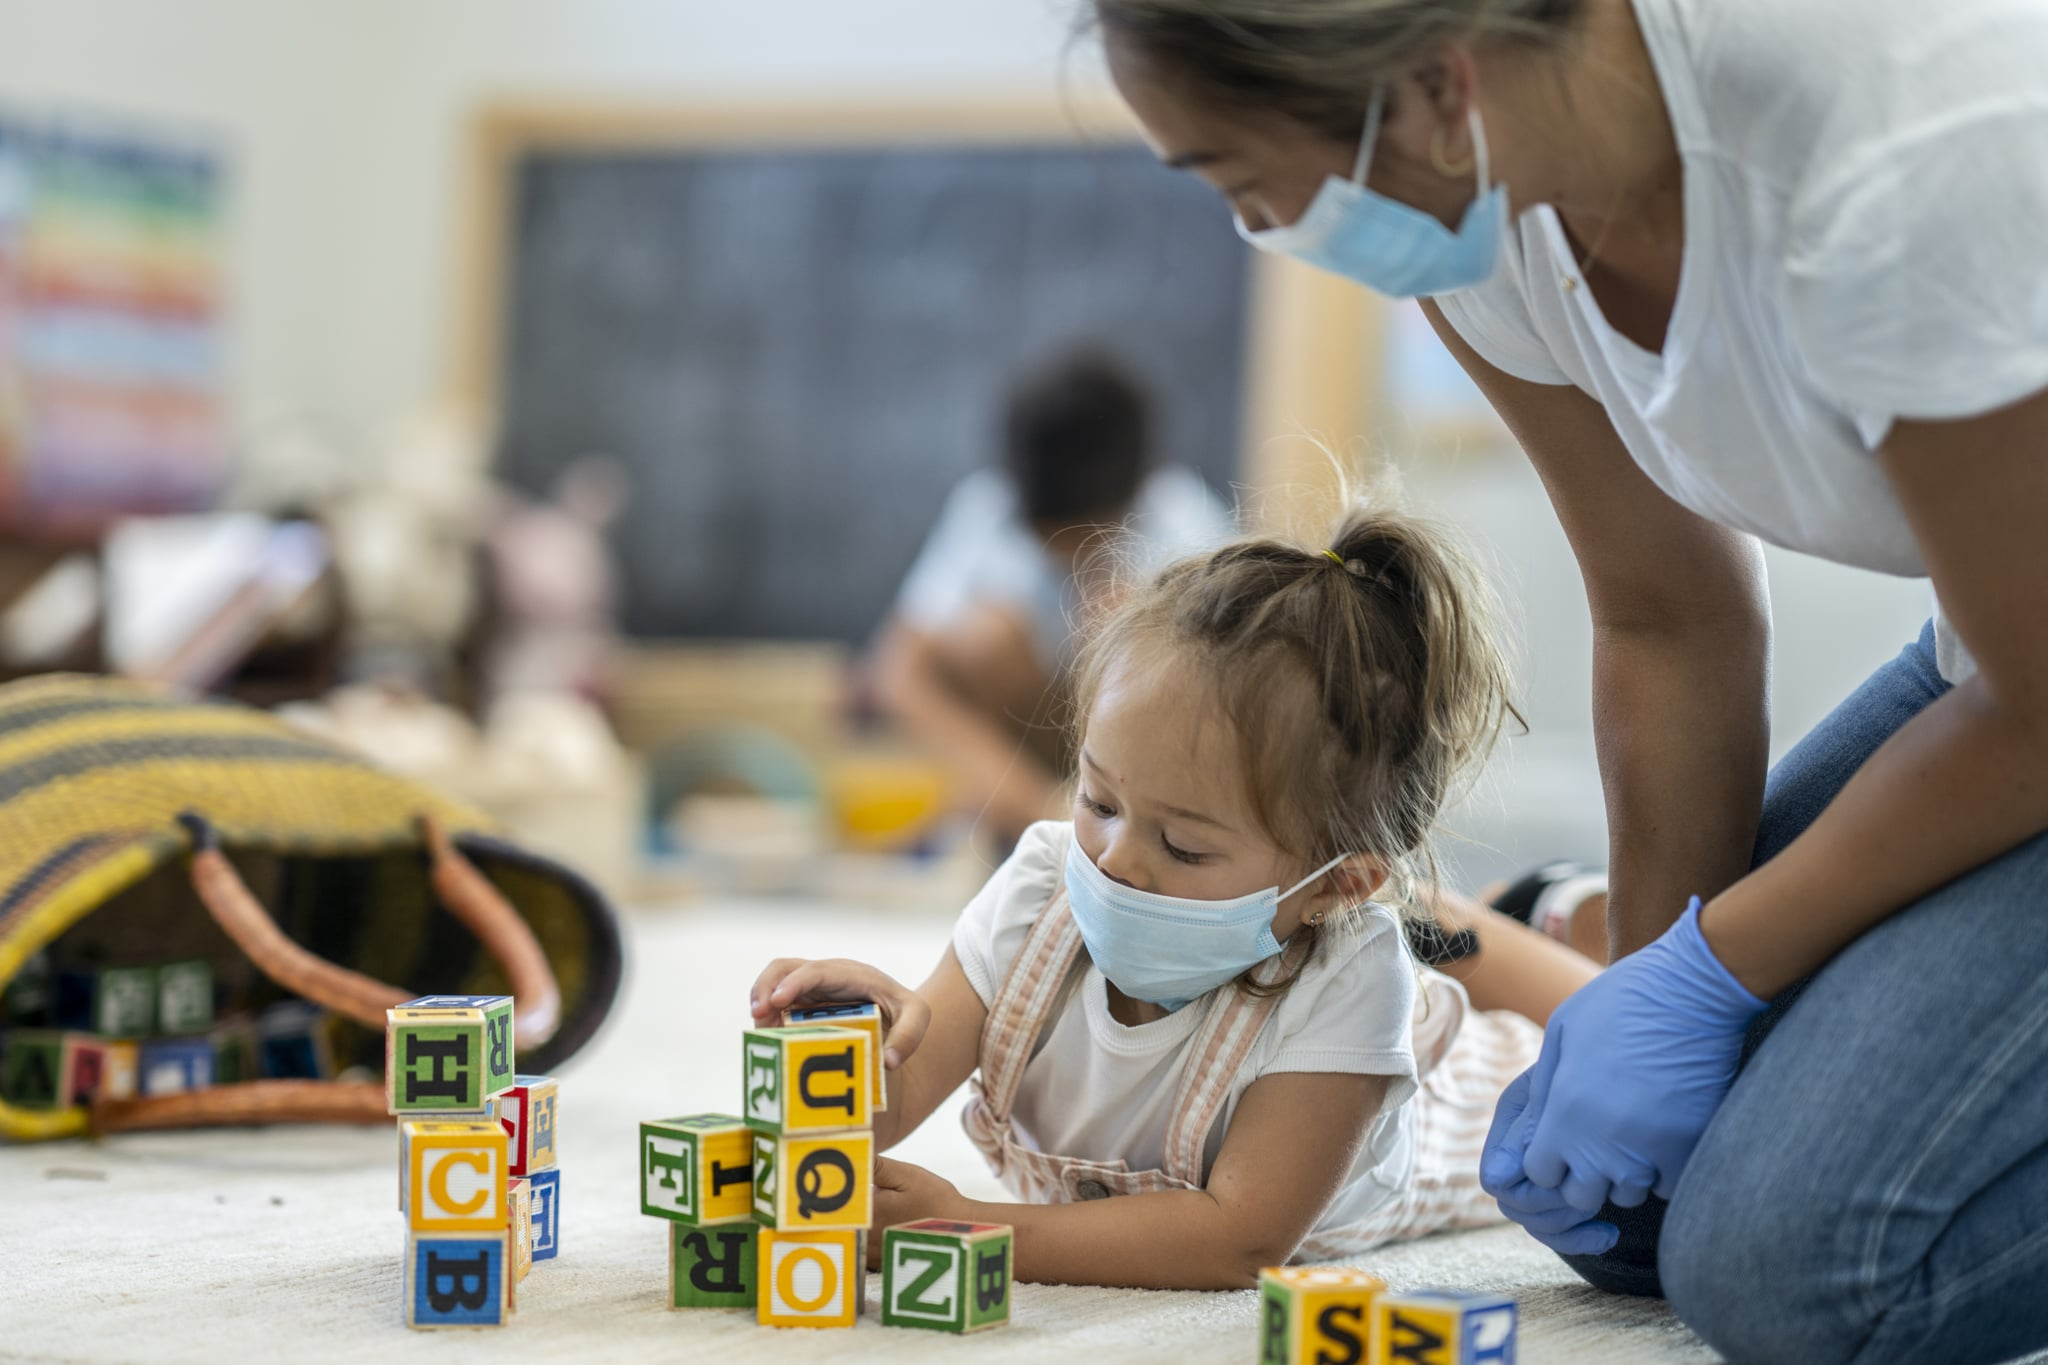 3 year old girl playing at daycare while wearing a protective face mask to protect from the transfer of germs during phase 2 of reopening during COVID-19.